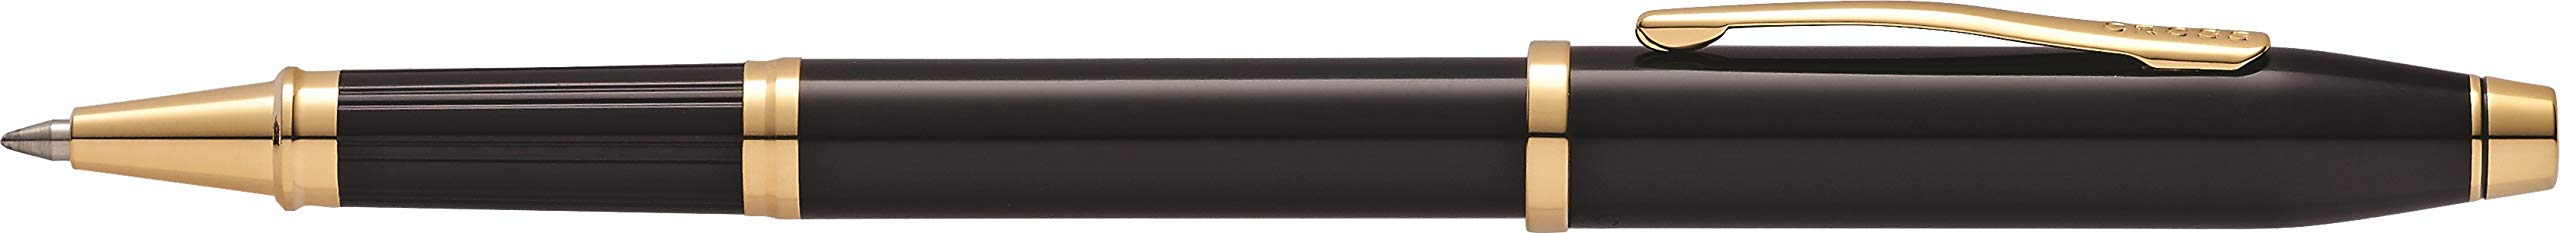 Cross Century II Black Lacquer Selectip Rollerball Pen with 23KT Gold-Plated Appointments by Cross (Image #3)